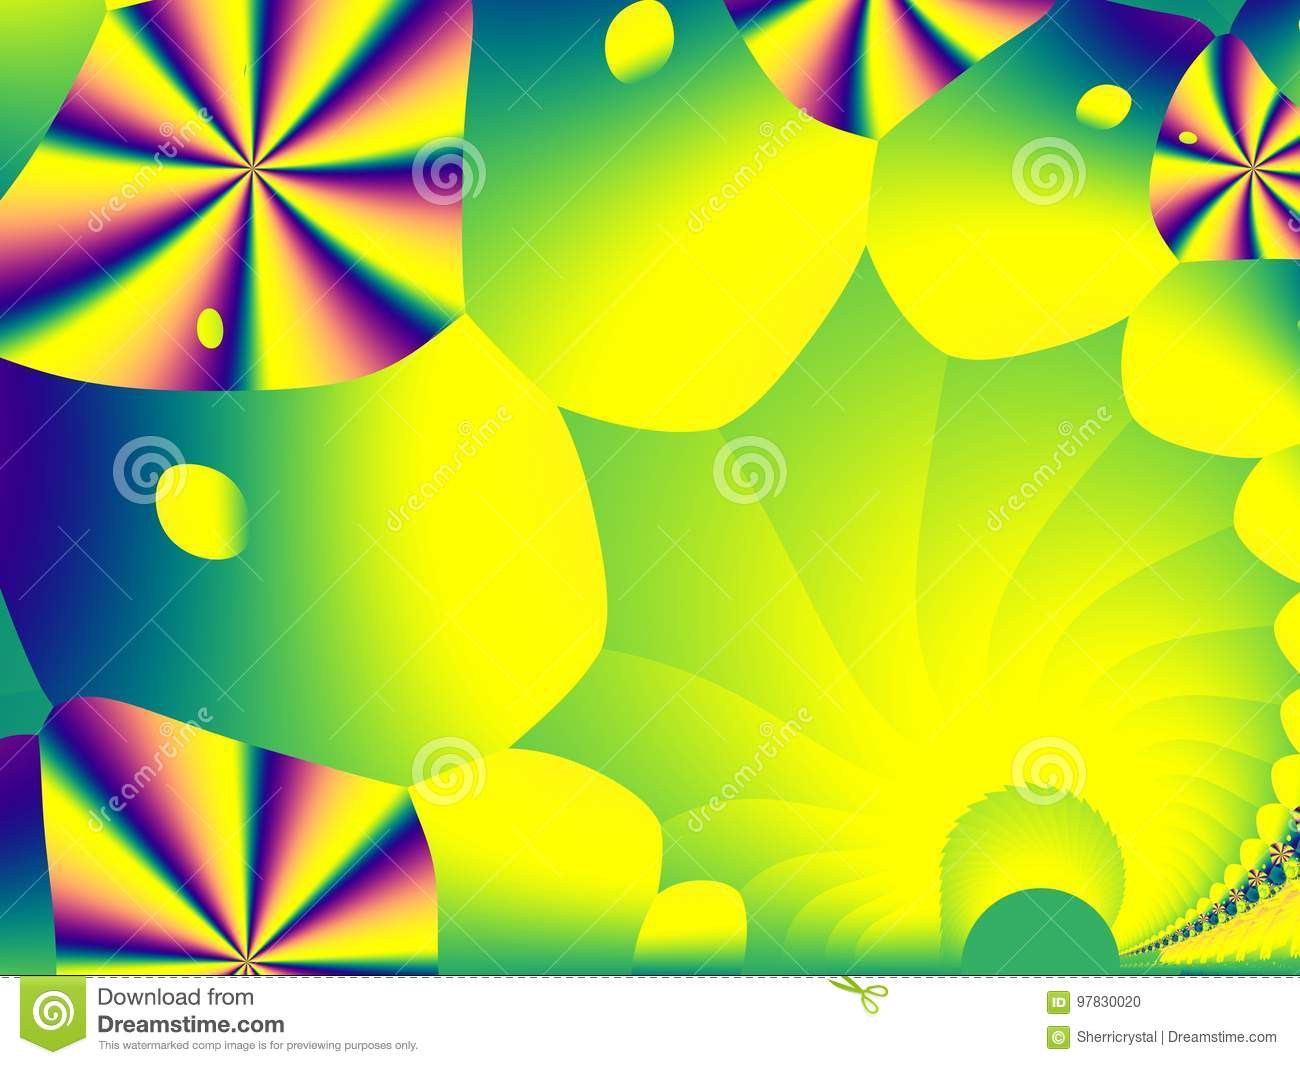 Green, yellow and rainbow playful fractal background art with colorful shapes. Creative graphic template for fun children events,